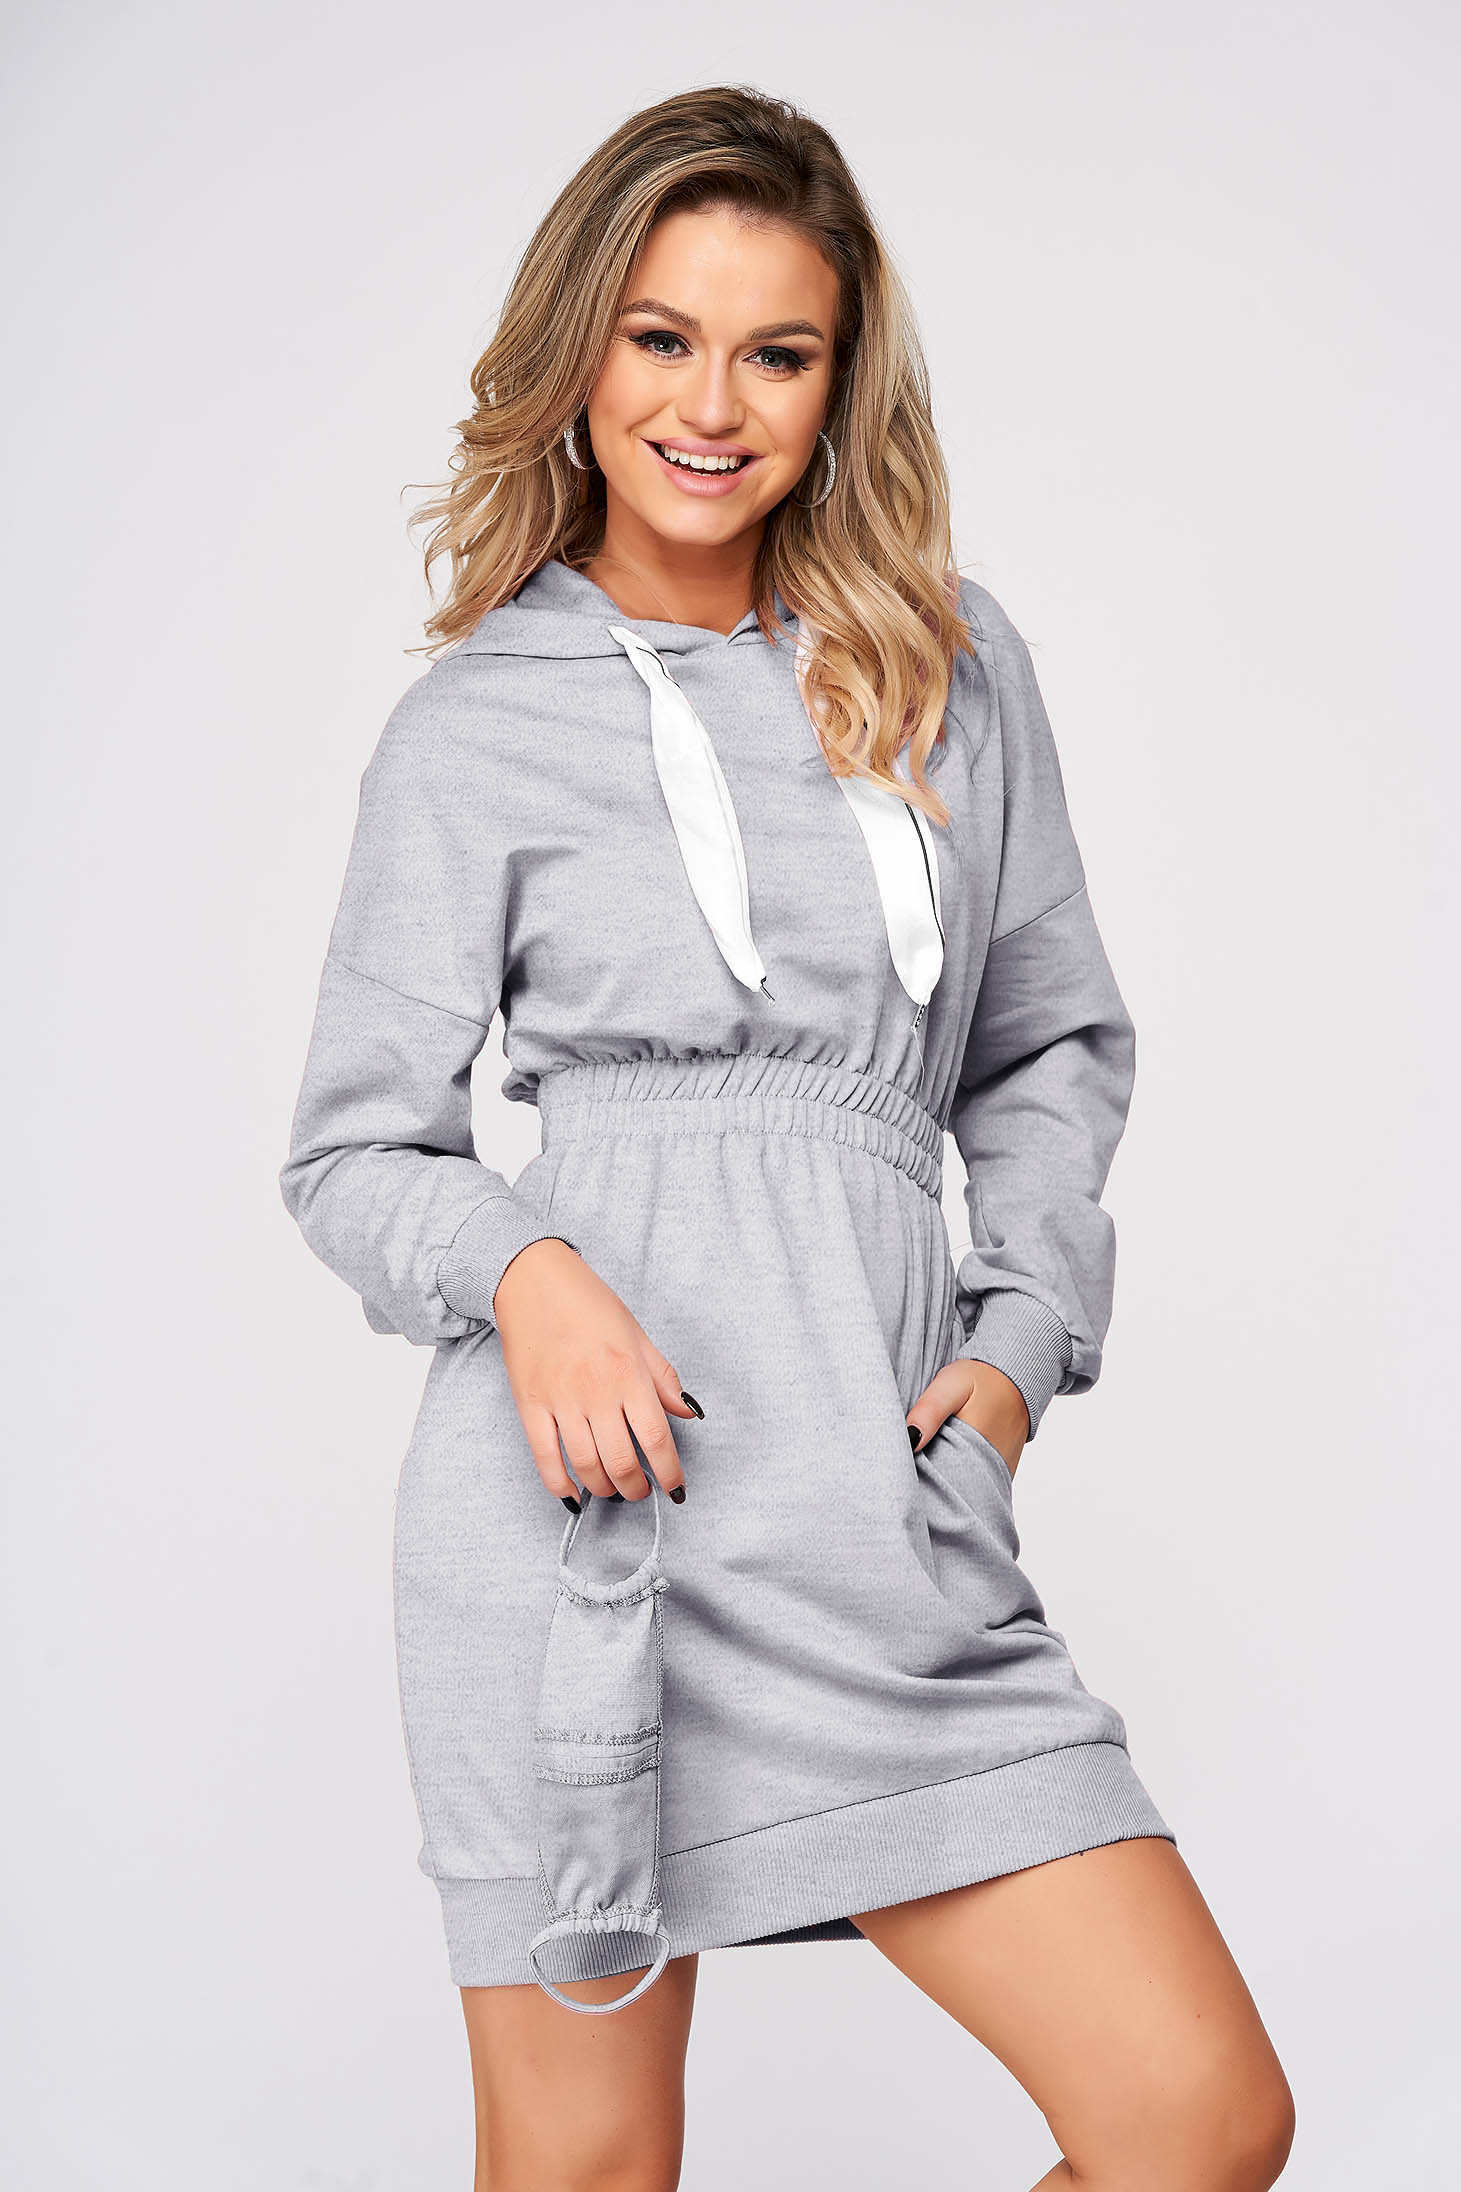 Grey dress casual pencil short cut cotton with pockets